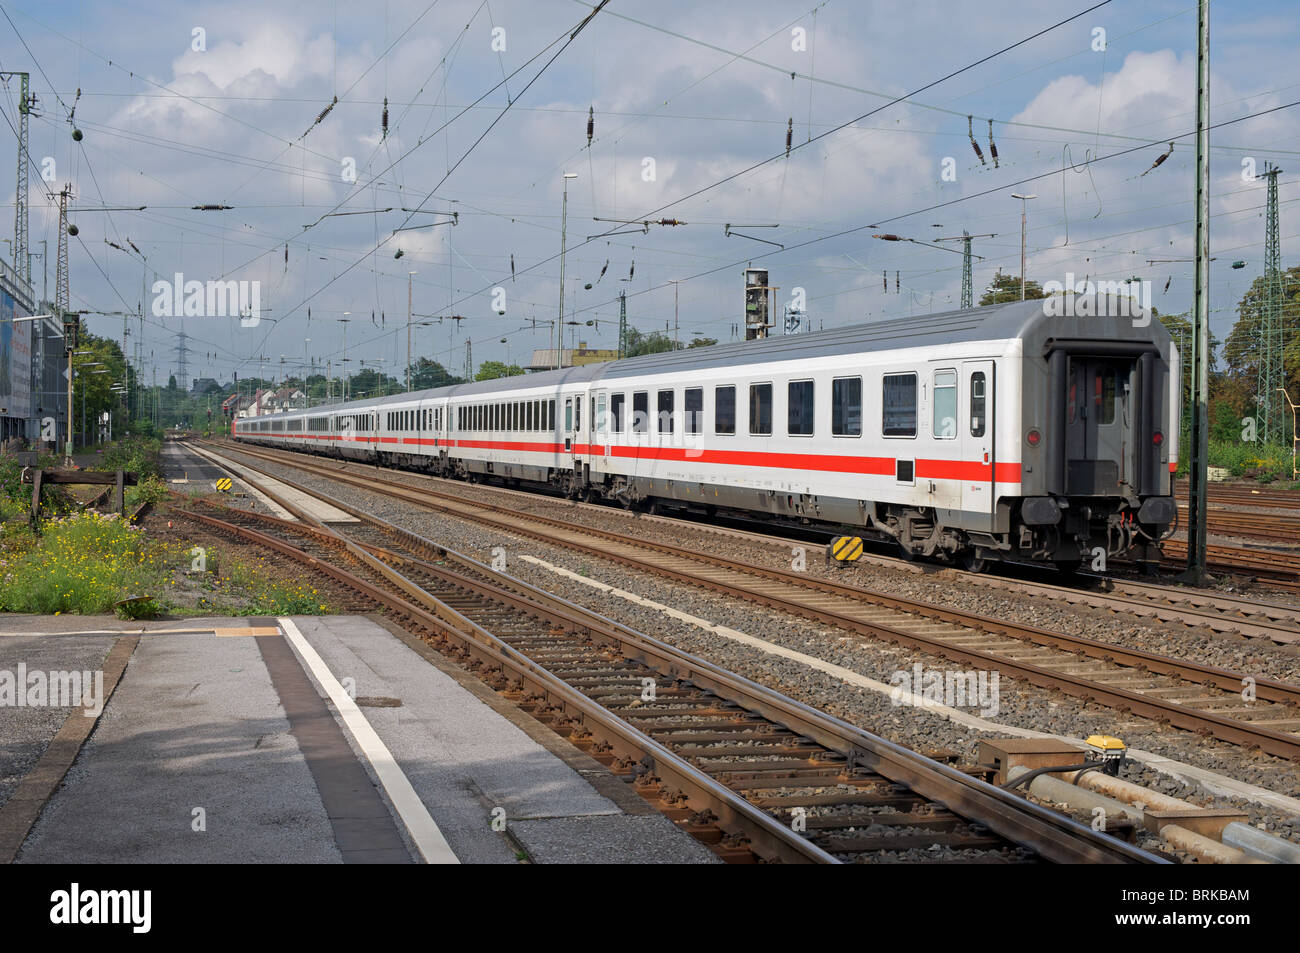 Intercity (IC) passenger train leaving Solingen, North Rhine-Westphalia, Germany. - Stock Image